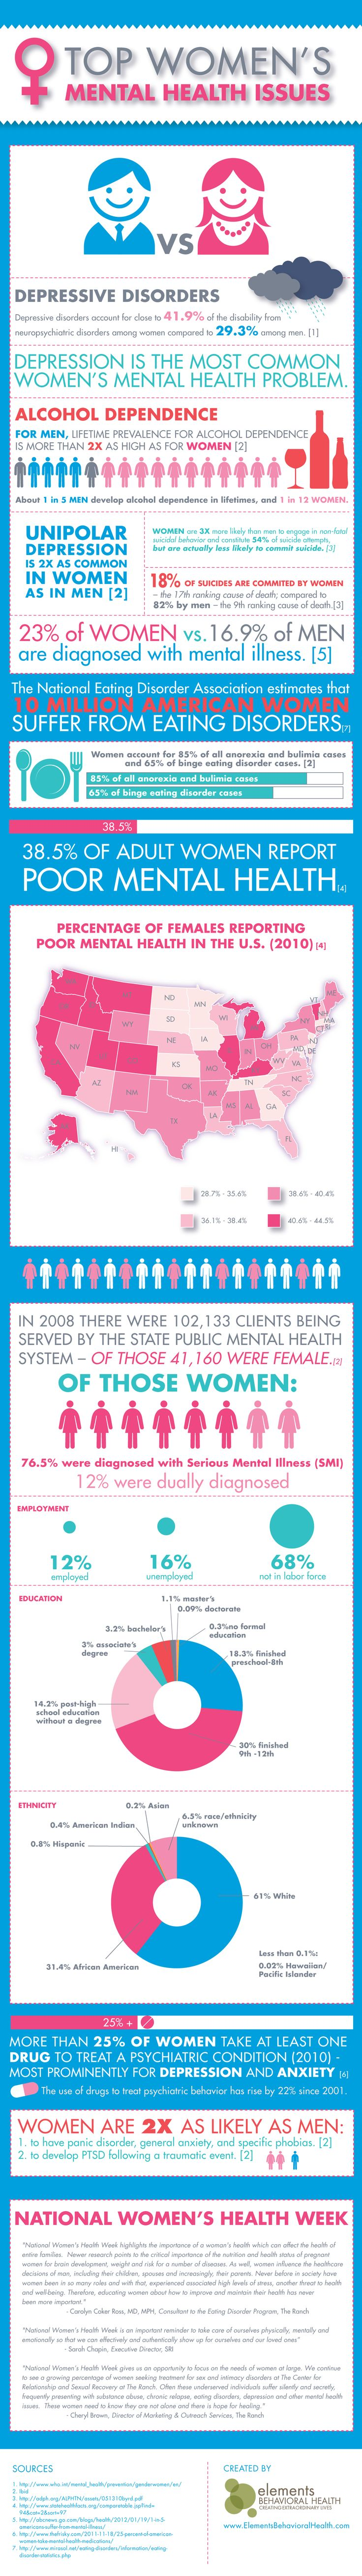 Women's Mental Health: infographic